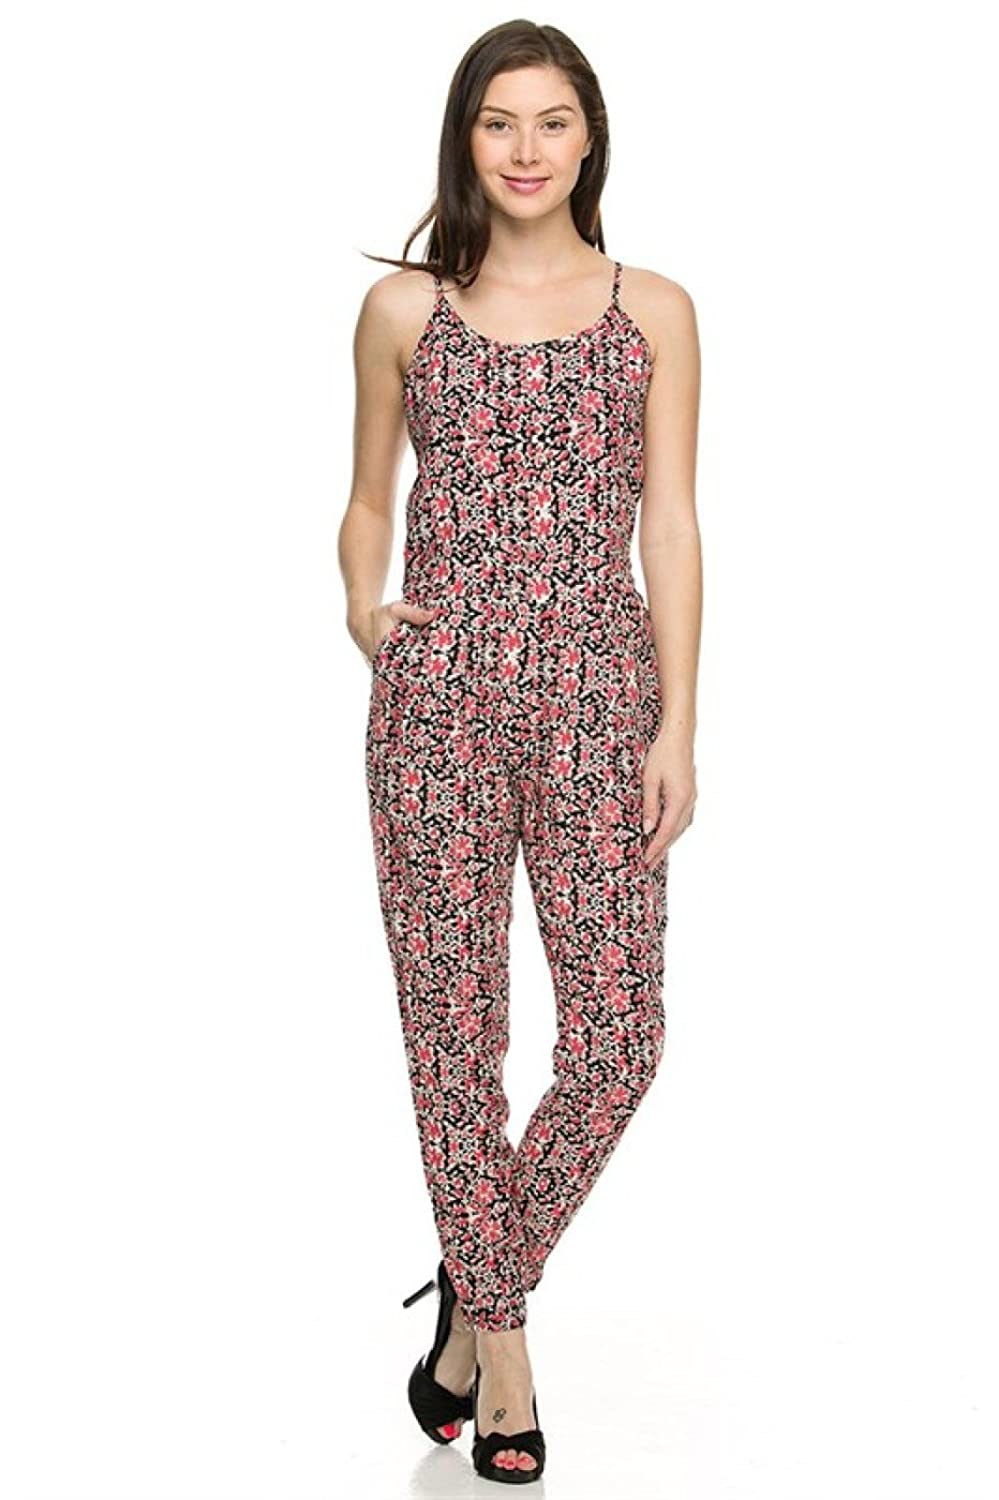 2LUV Women's Sleeveless Antique Print Slim Fit Jumpsuit